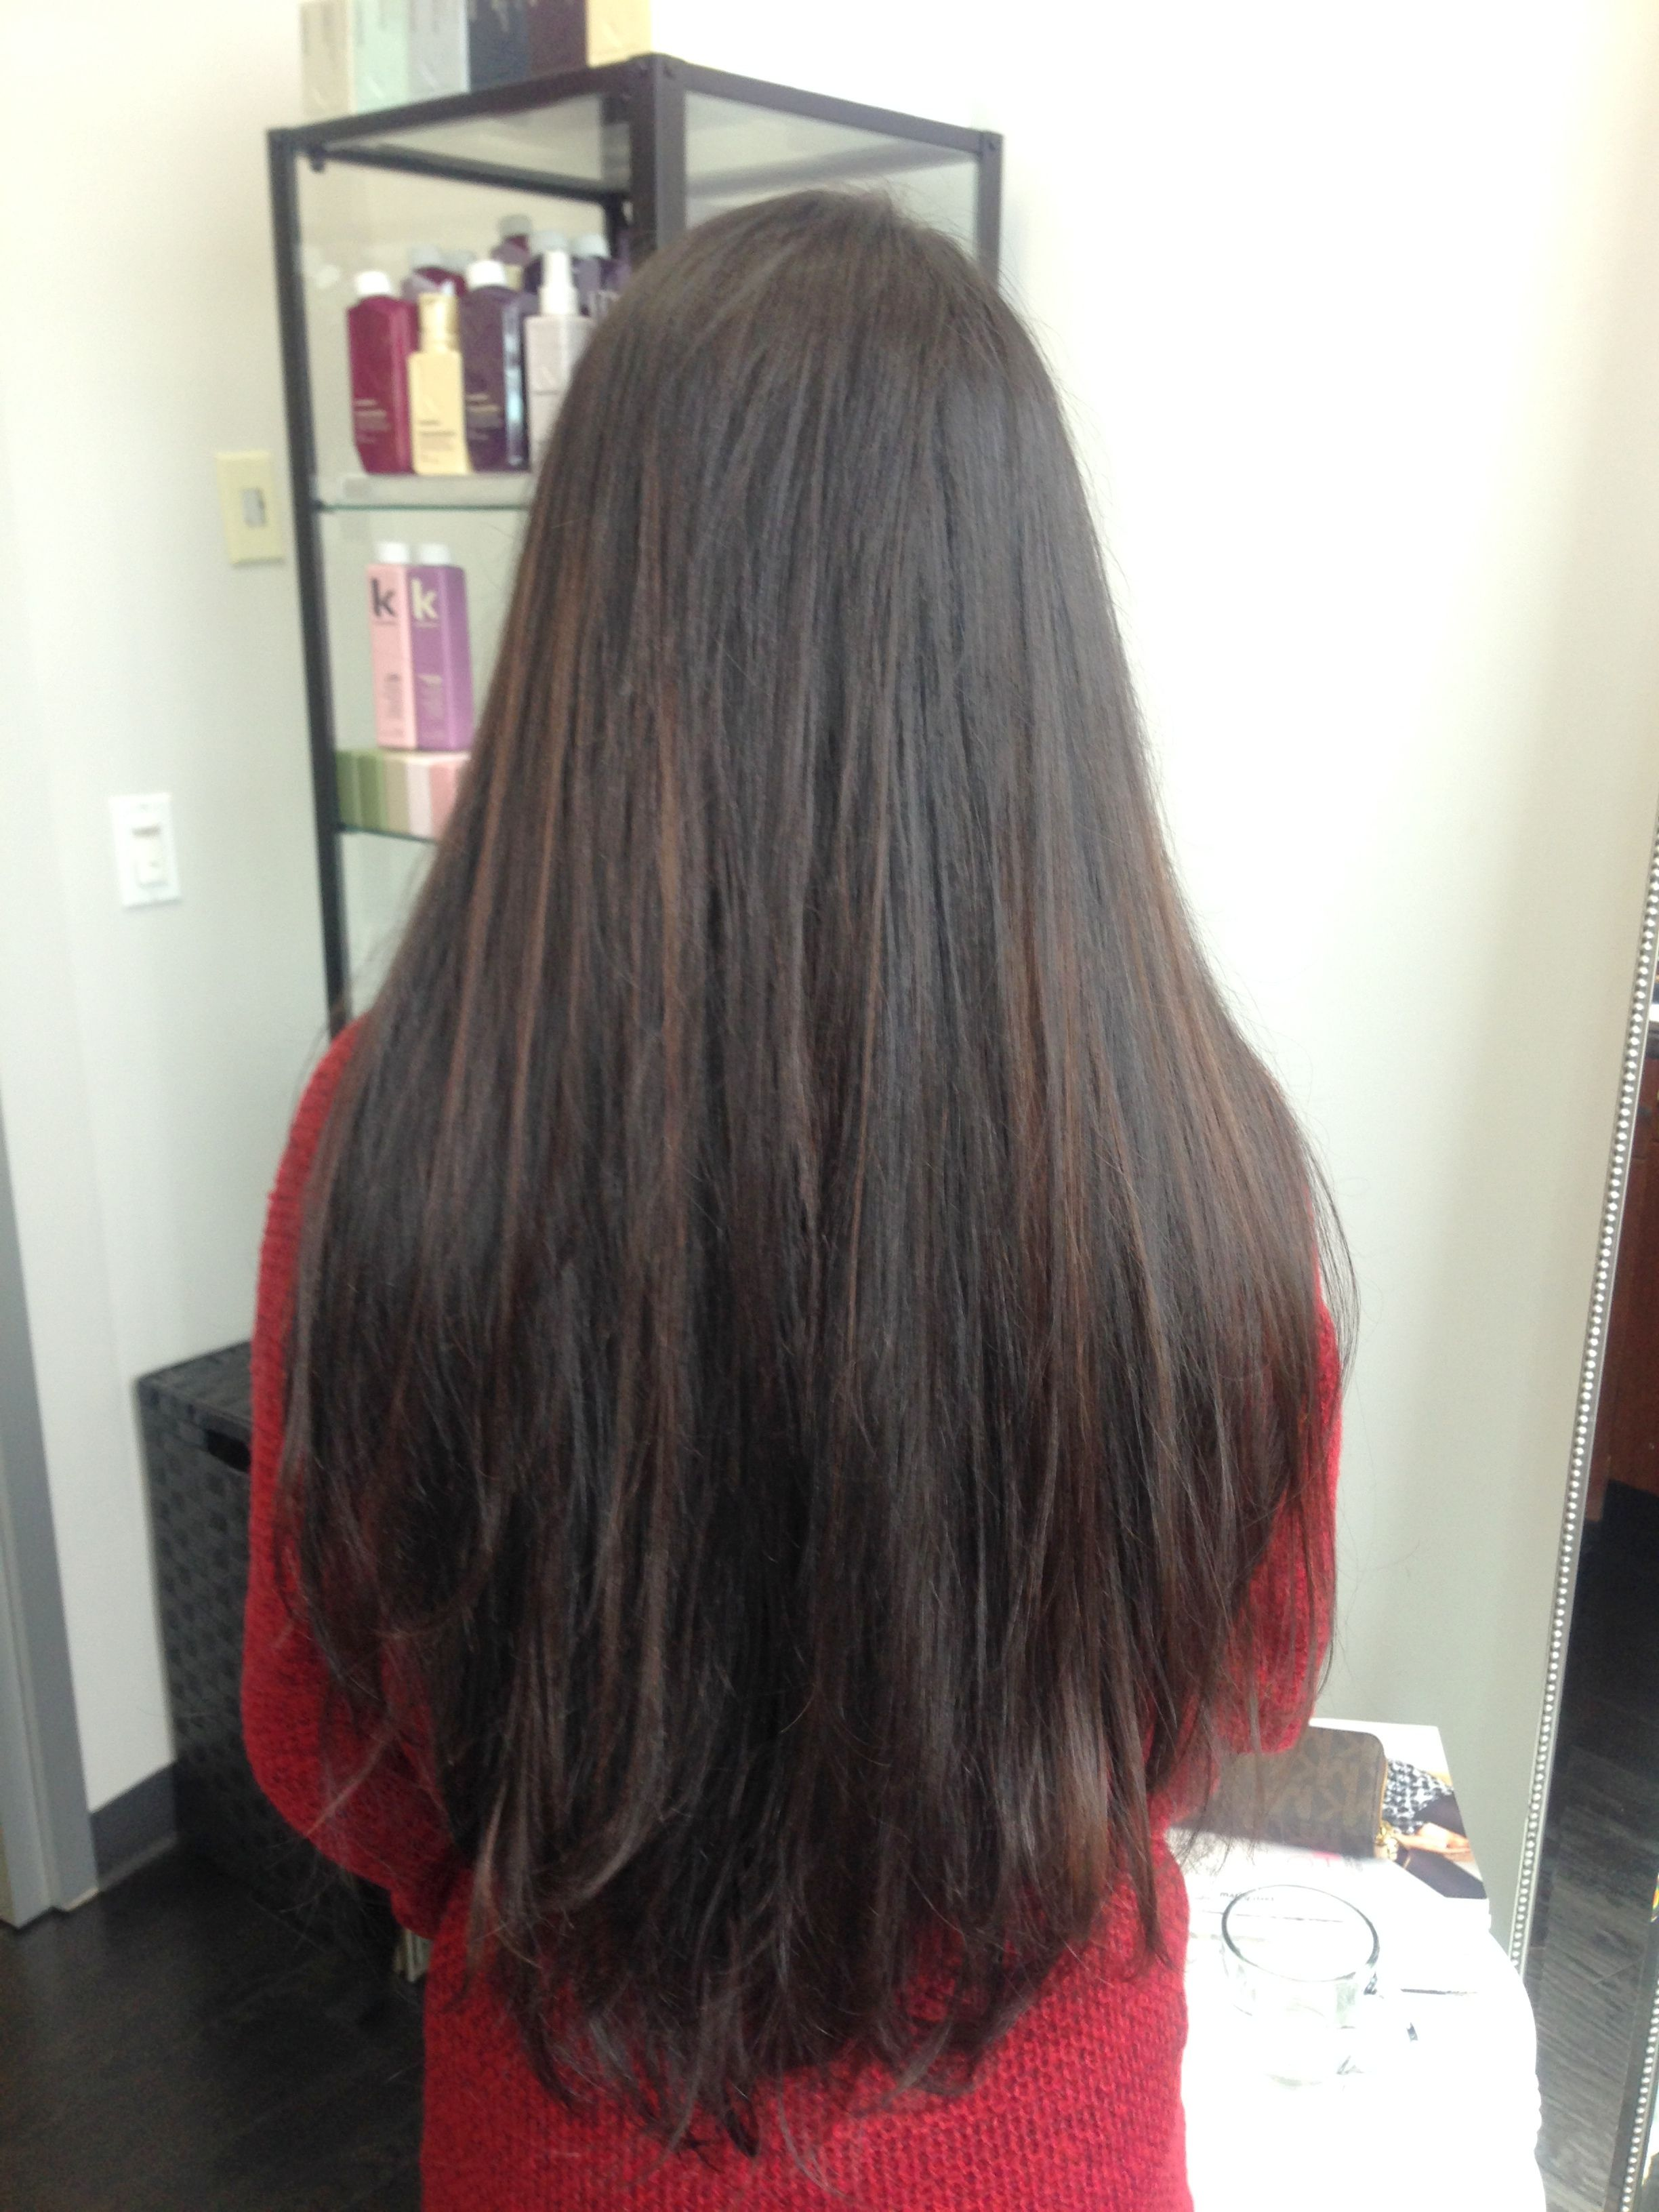 Sunkissed Partial Balayage Effect With Hints On Red And Golden On